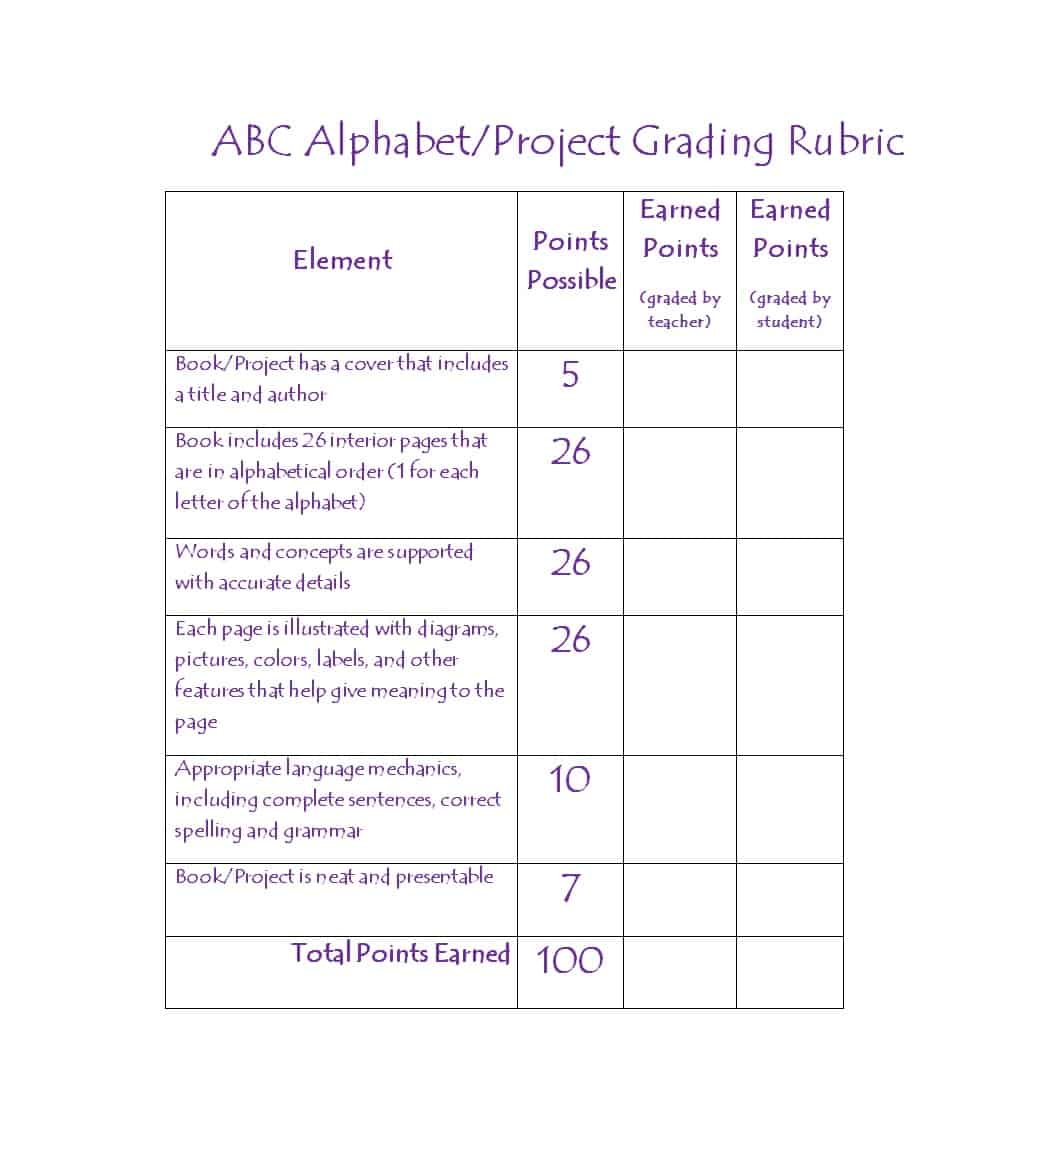 46 Editable Rubric Templates (Word Format) - Template Lab - Free Printable Art Rubrics